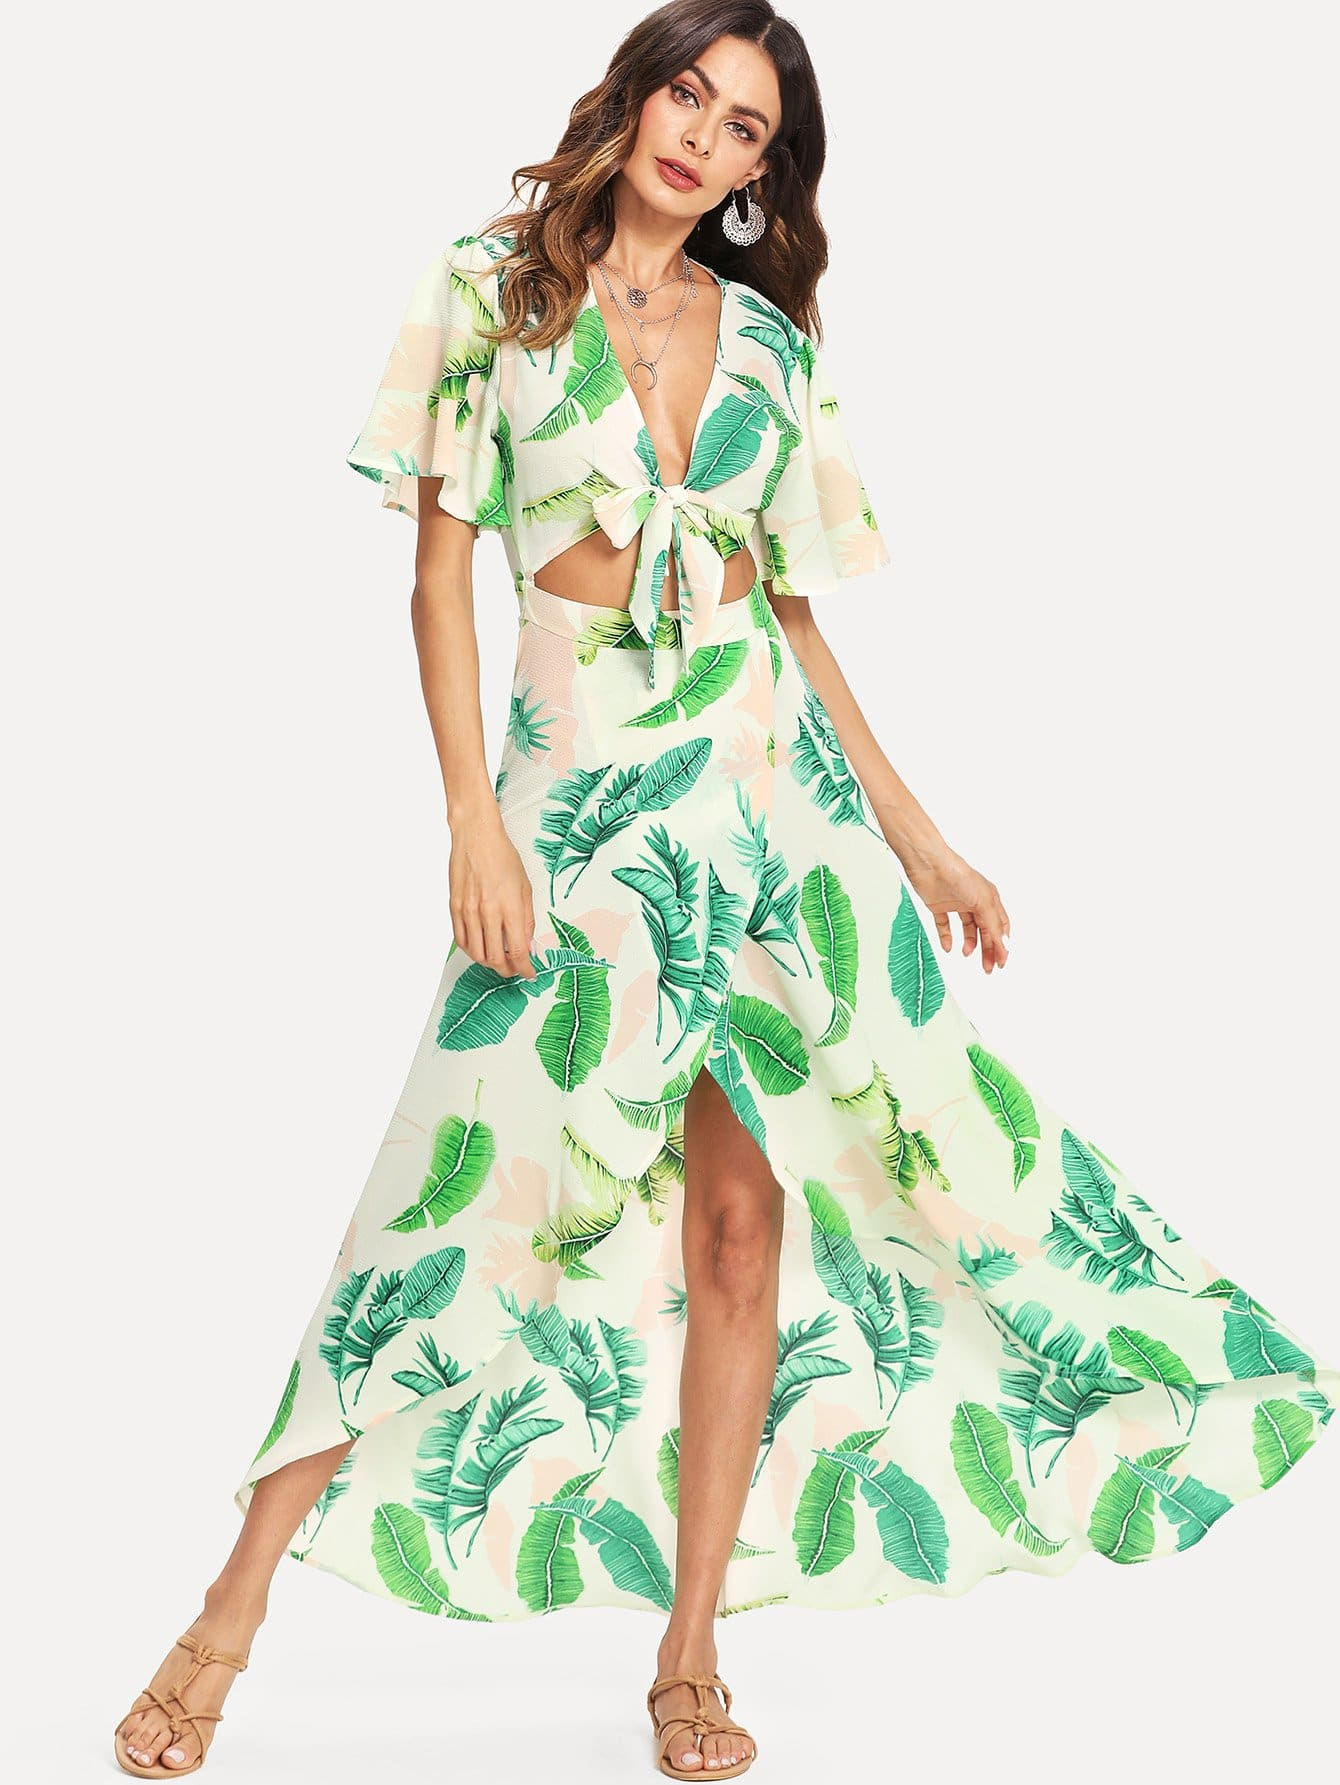 Knot Front Open Midriff Wrap Tropical Dress knot front cutout midriff halterneck gingham dress